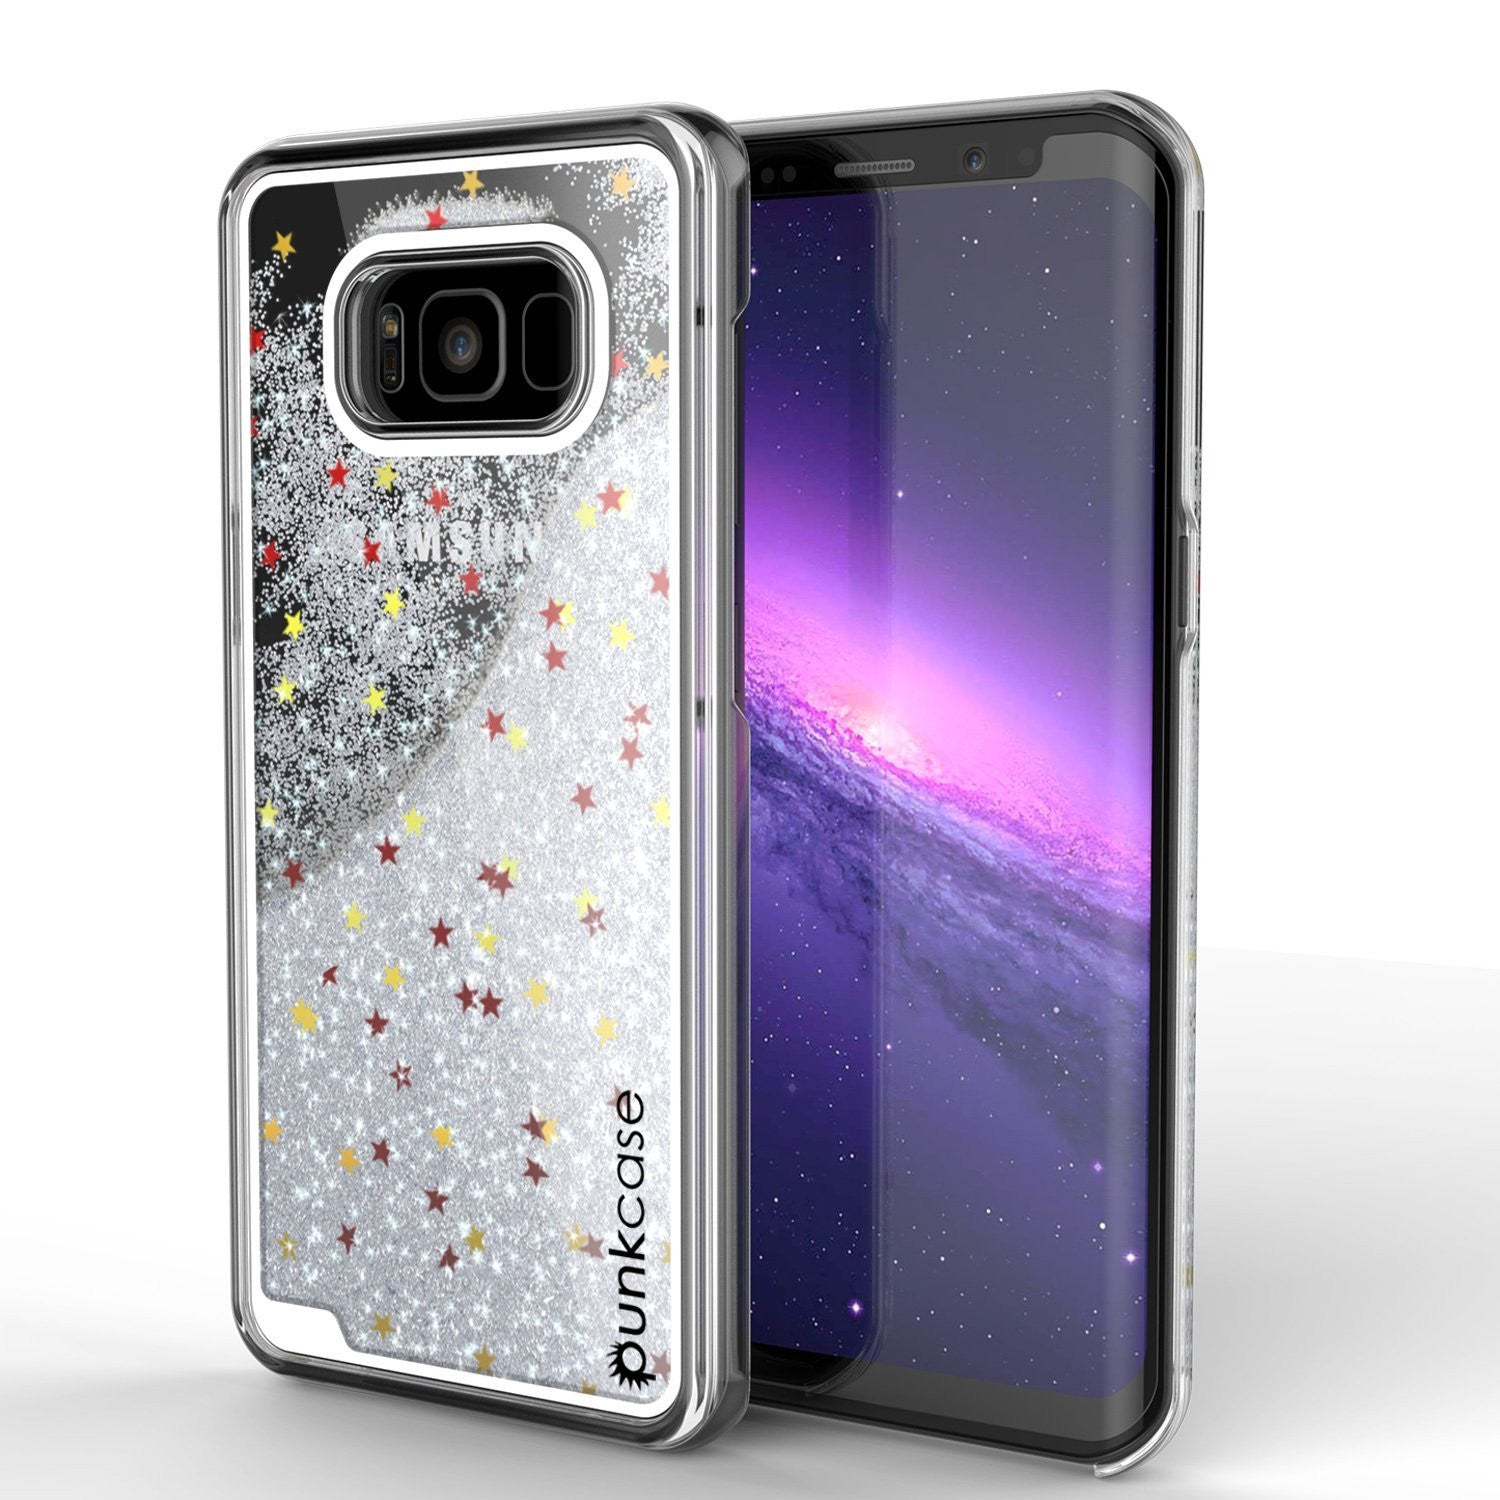 S8 Plus Case, Punkcase Liquid Silver Series Protective Dual Layer Floating Glitter Cover